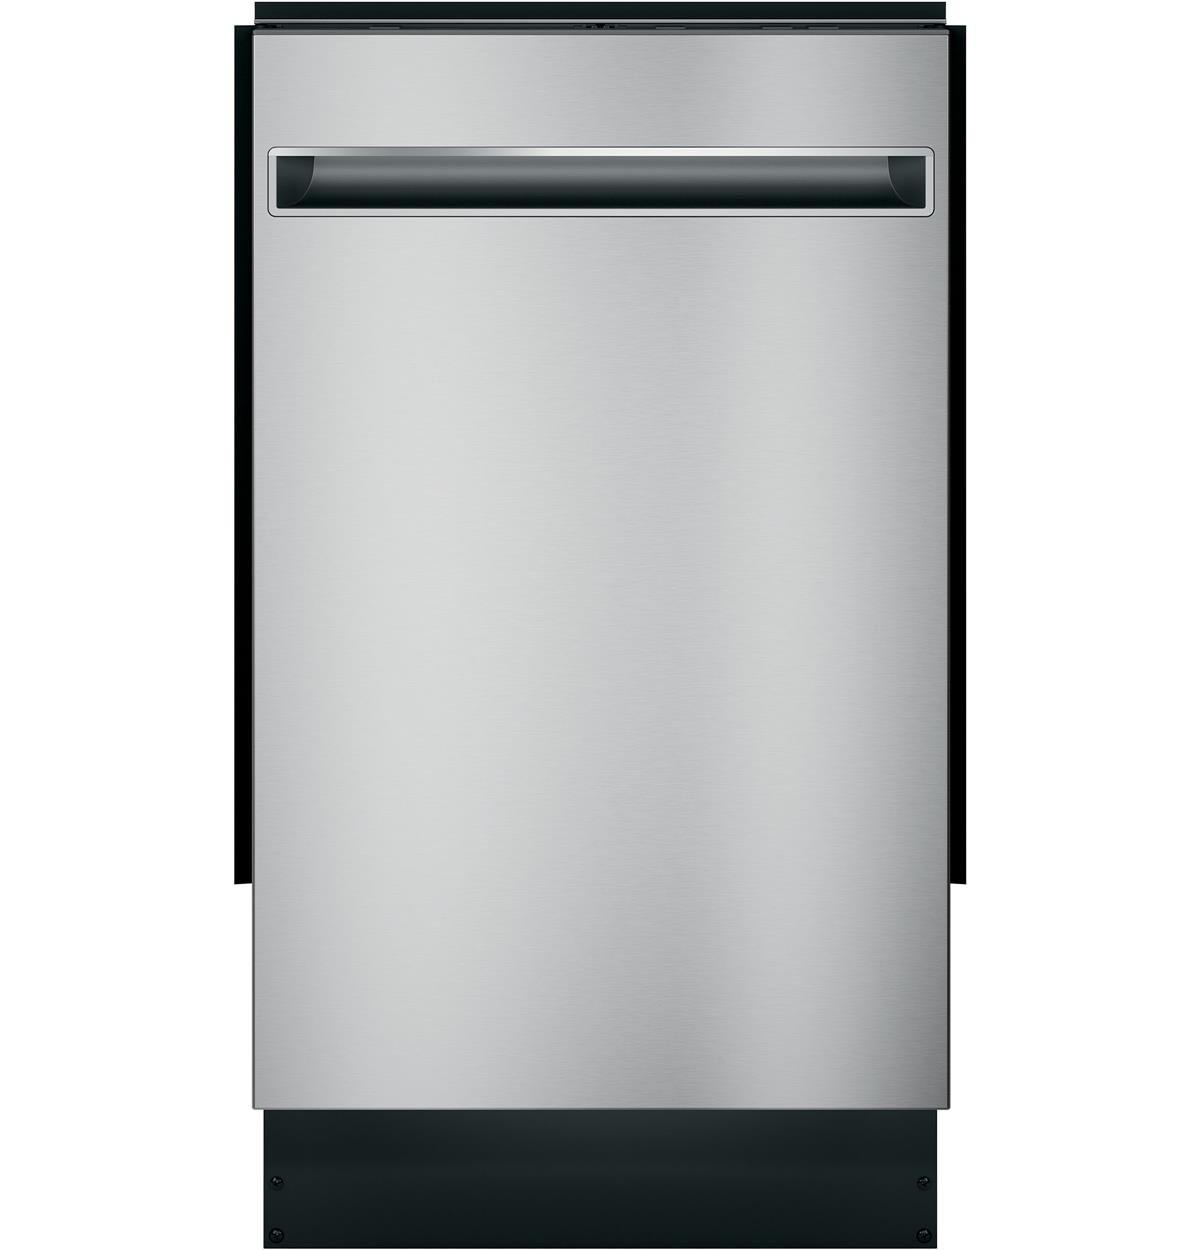 Stainless Steel Built-In QDT125SSLSS Un-installed/free-standing